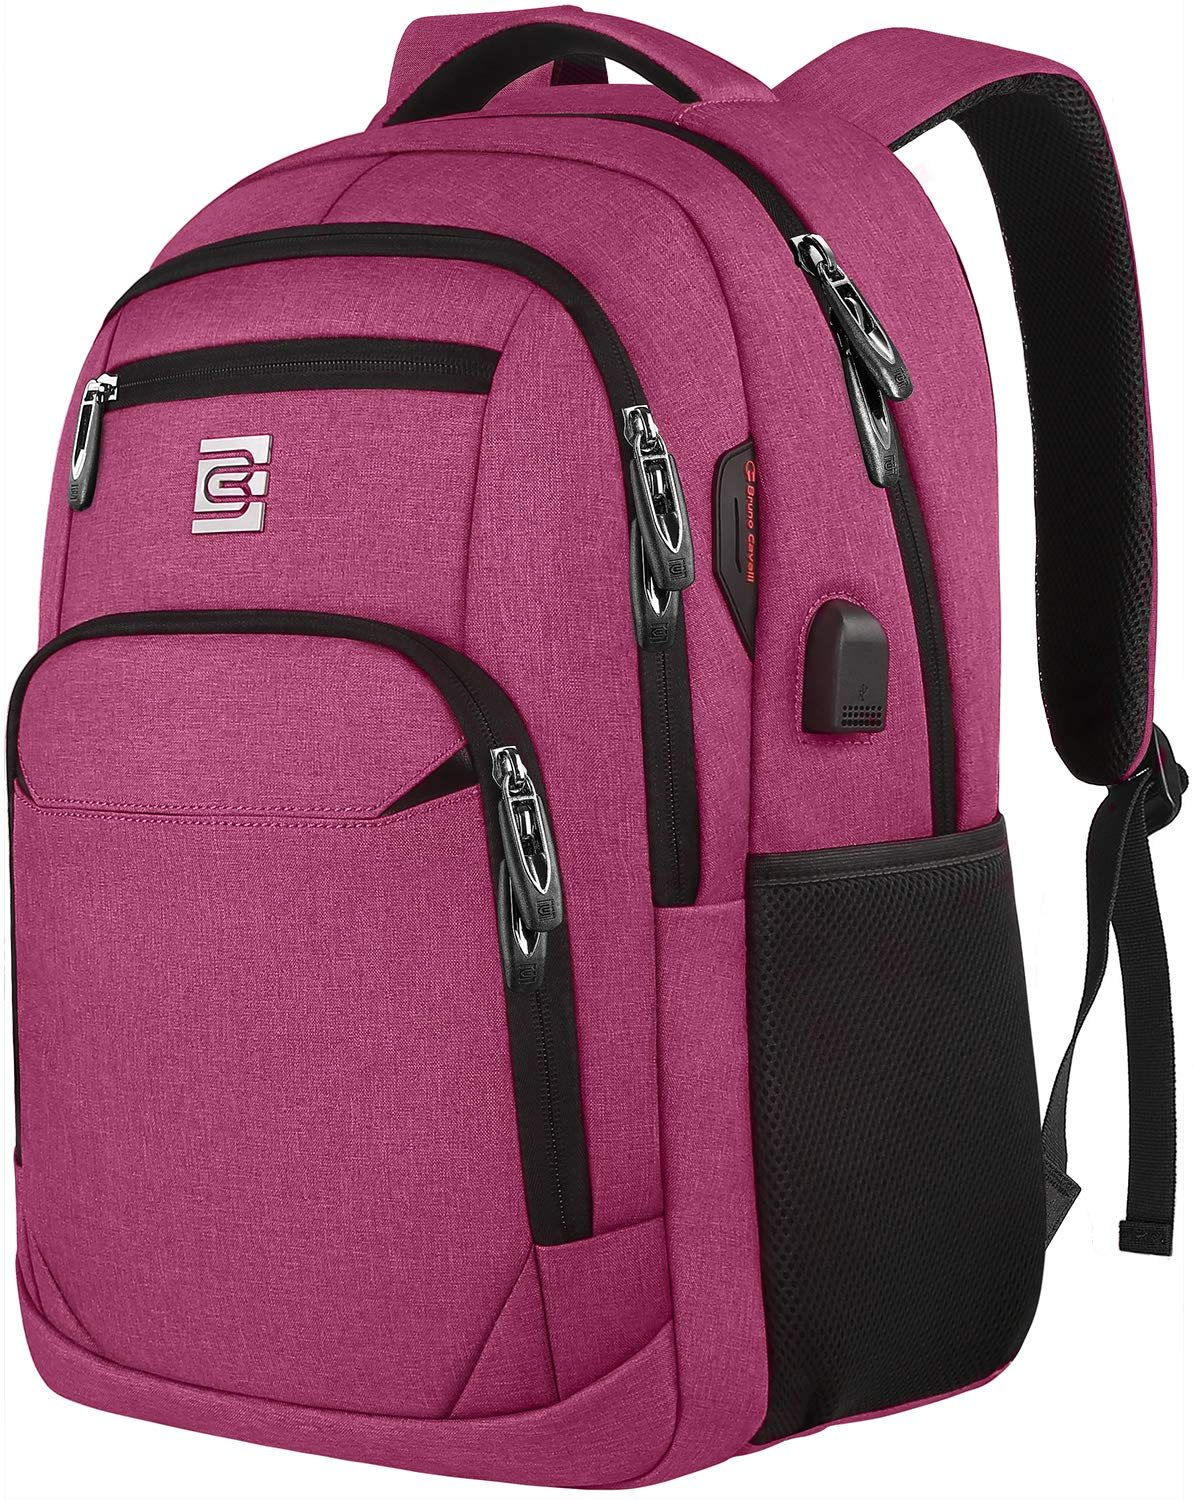 Laptop Backpack,Business Travel Anti Theft Slim Durable Laptops Backpack with USB Charging Port,Water Resistant College Computer Bag for Women & Men Fits 15.6 Inch Laptop-Rose Red by Volher